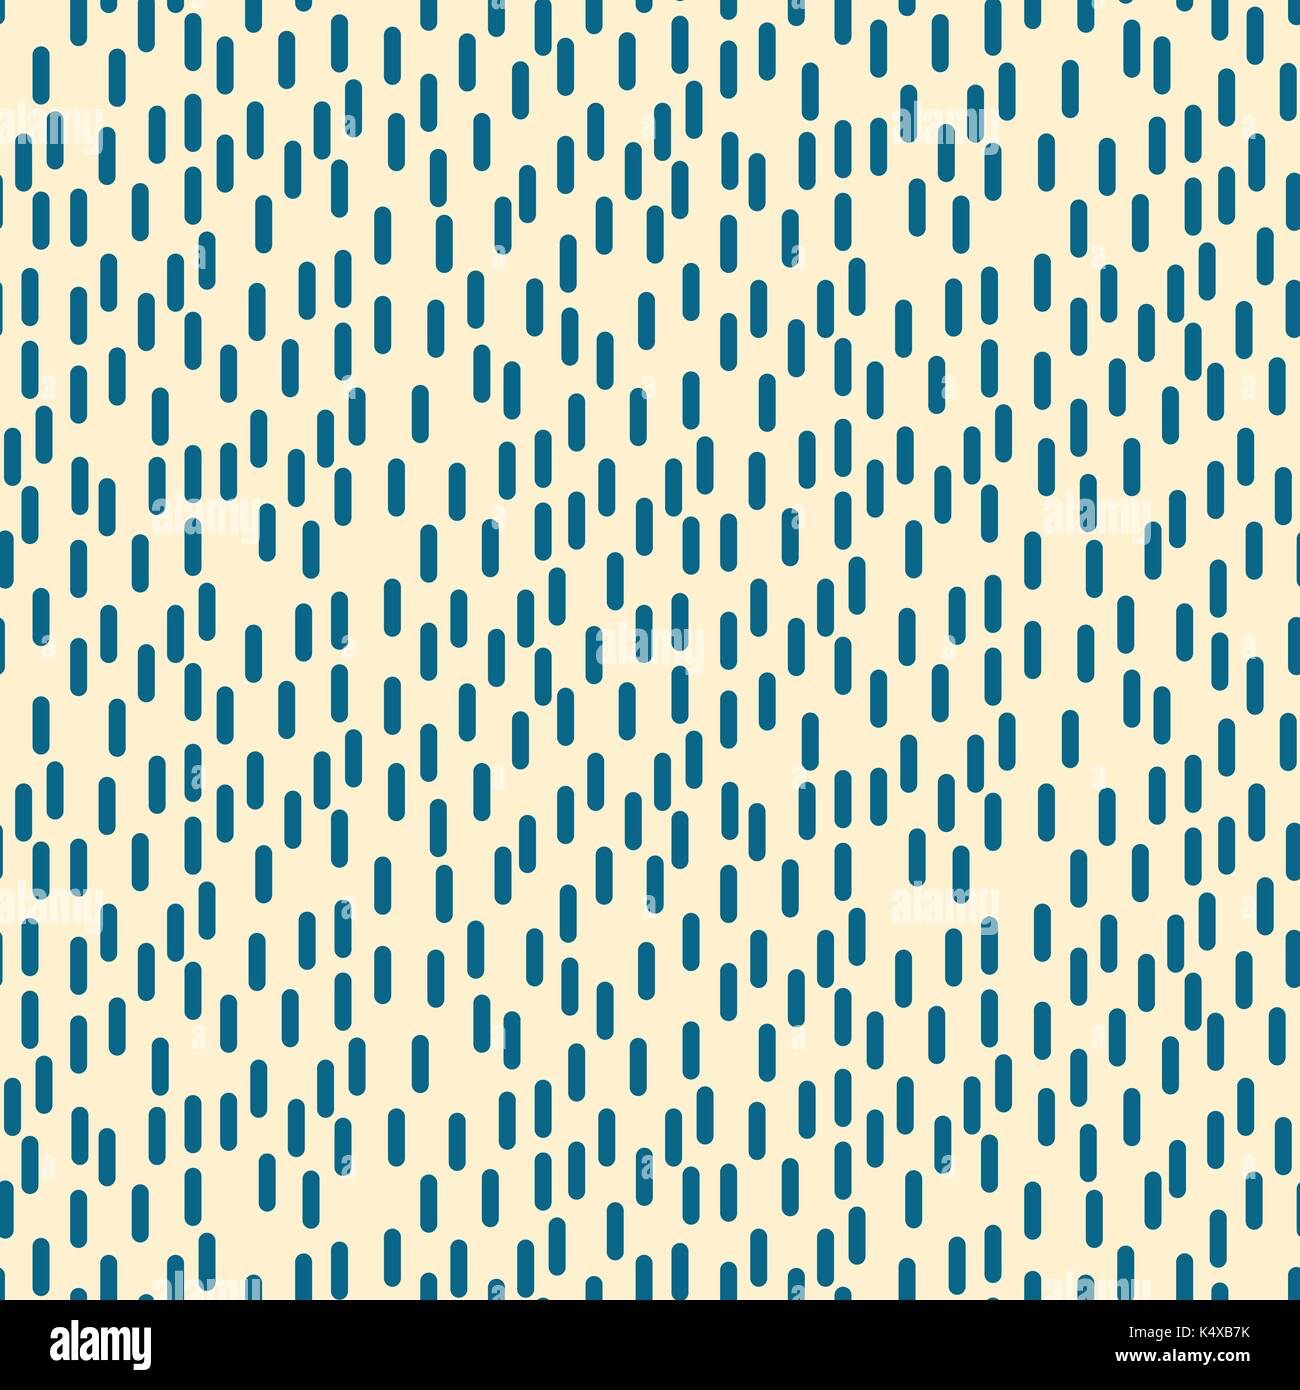 Small rectangle rain particles seamless vector pattern. - Stock Image